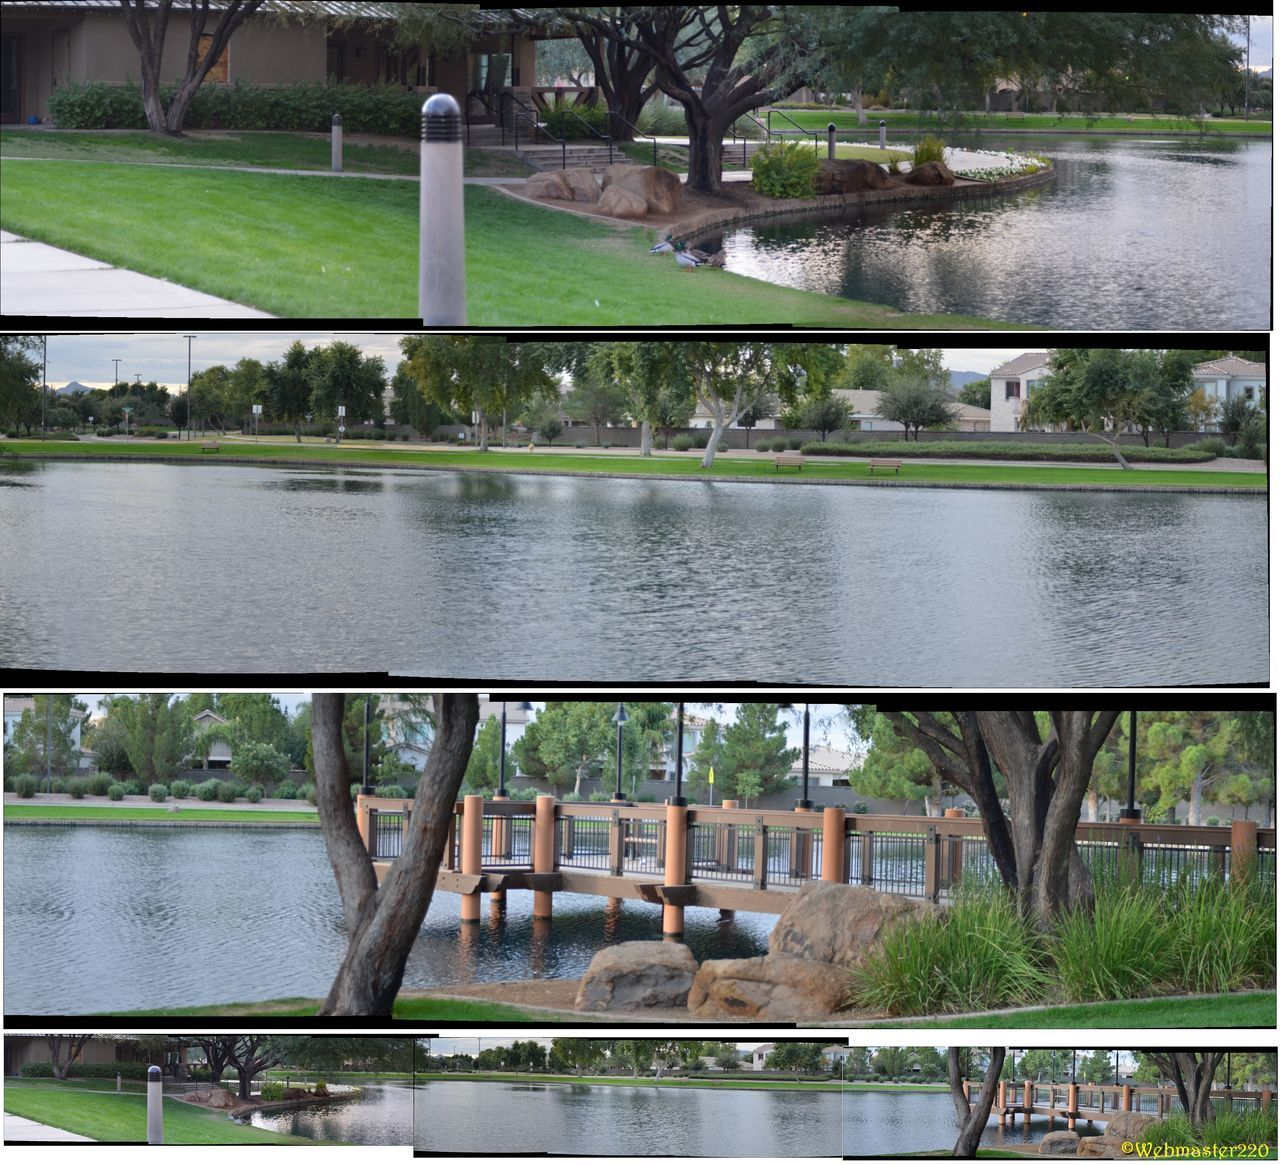 Power Ranch Lake Park including Clubhouse, Pier, Lake Catch And Release Distant Engineering Fishing Pier Lake Lake View Lakeshore Lakeside Outdoors Park Pier Fishing Pond Ponds Power Ranch Gilbert Az Power Ranch Lake Park Reflection Relaxing Moments Standing Water Tree View Of The Lake Water Waterfront